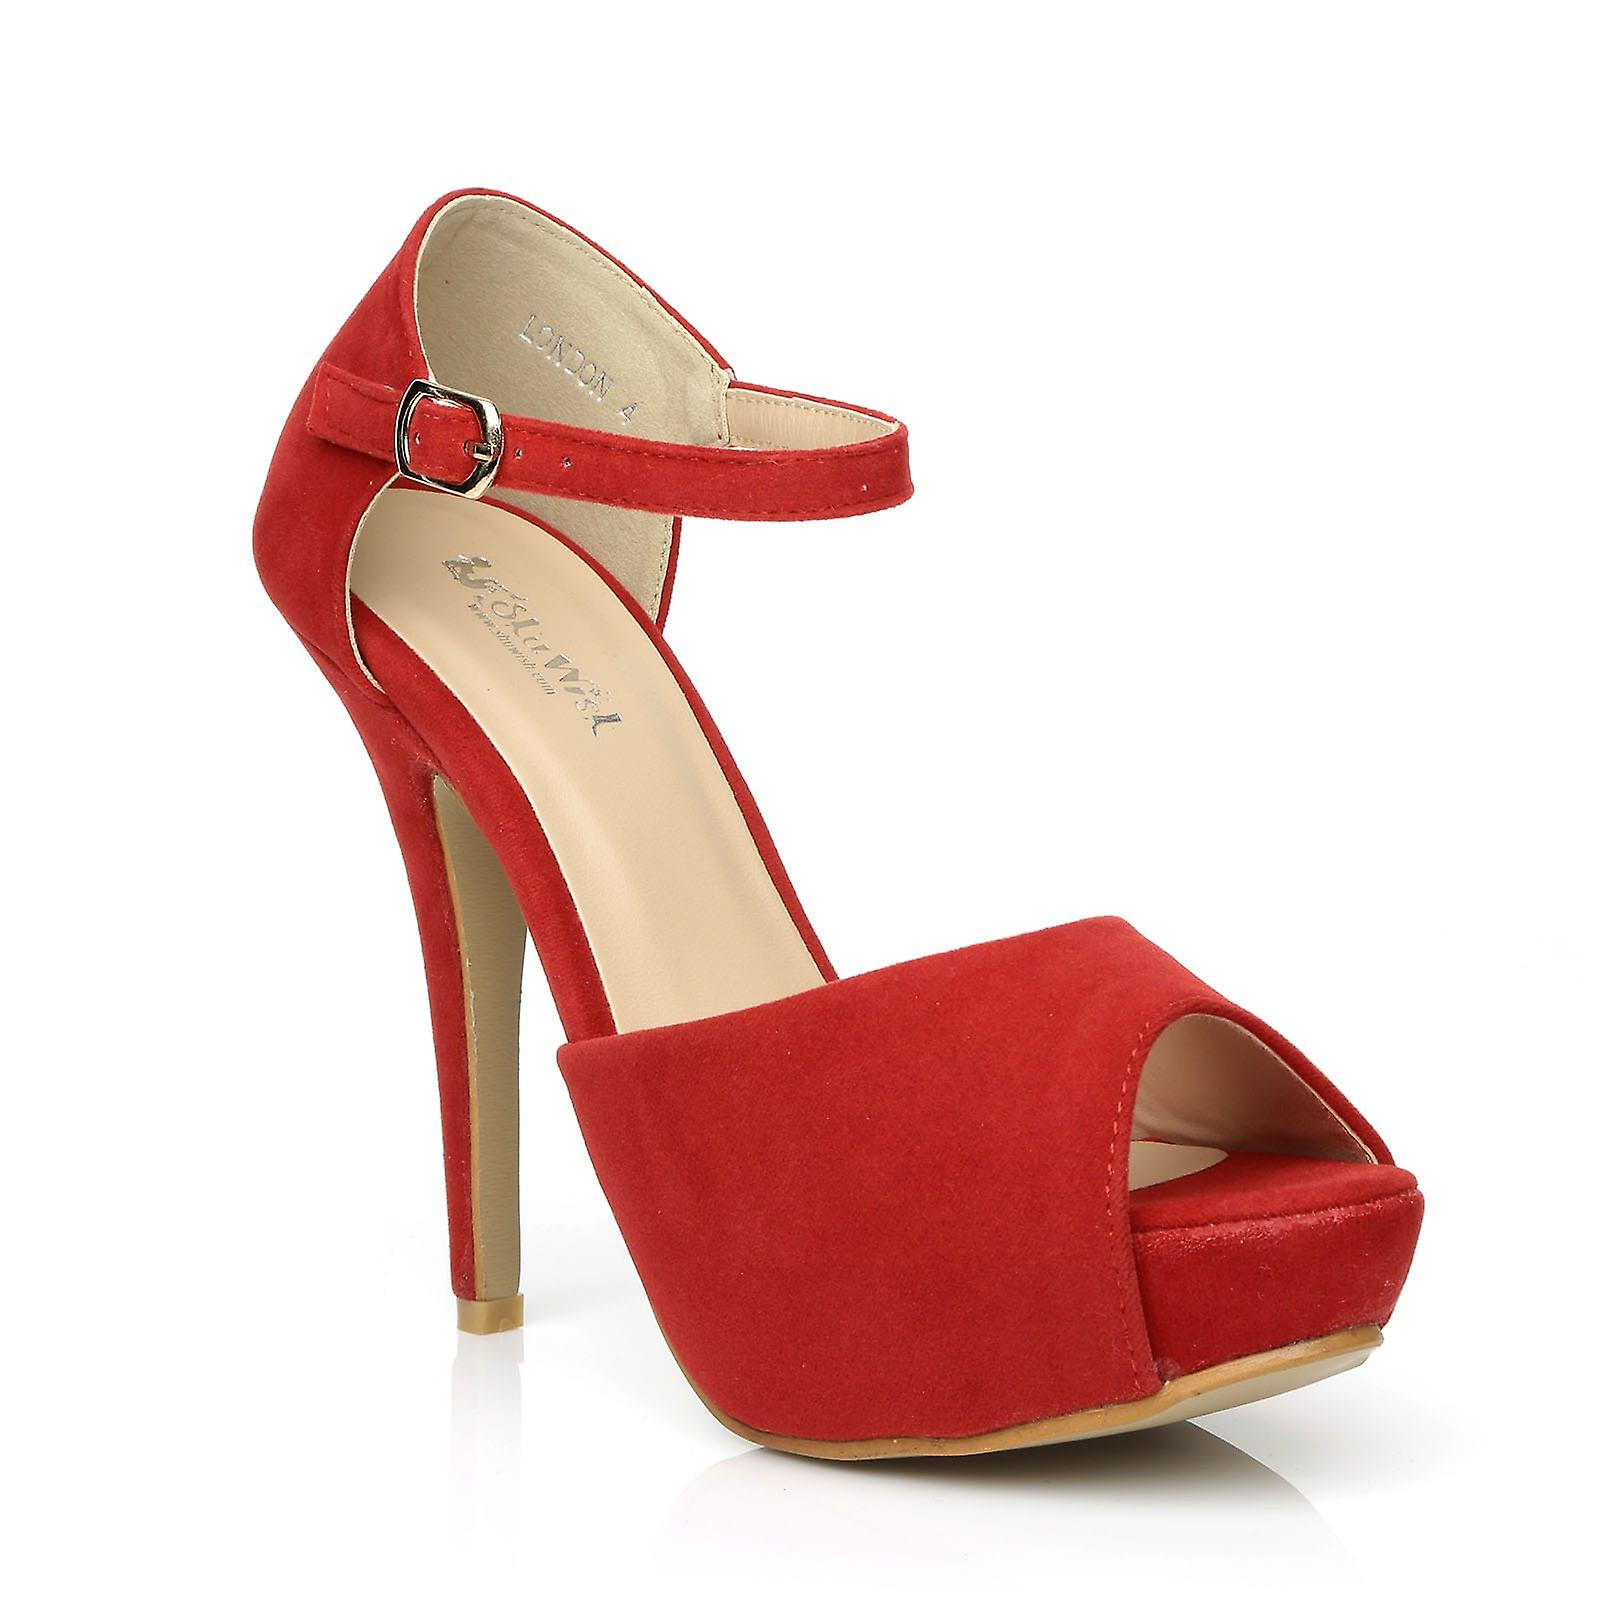 LONDON Red Faux Suede Ankle Strap Platform Peep Toe High Heels